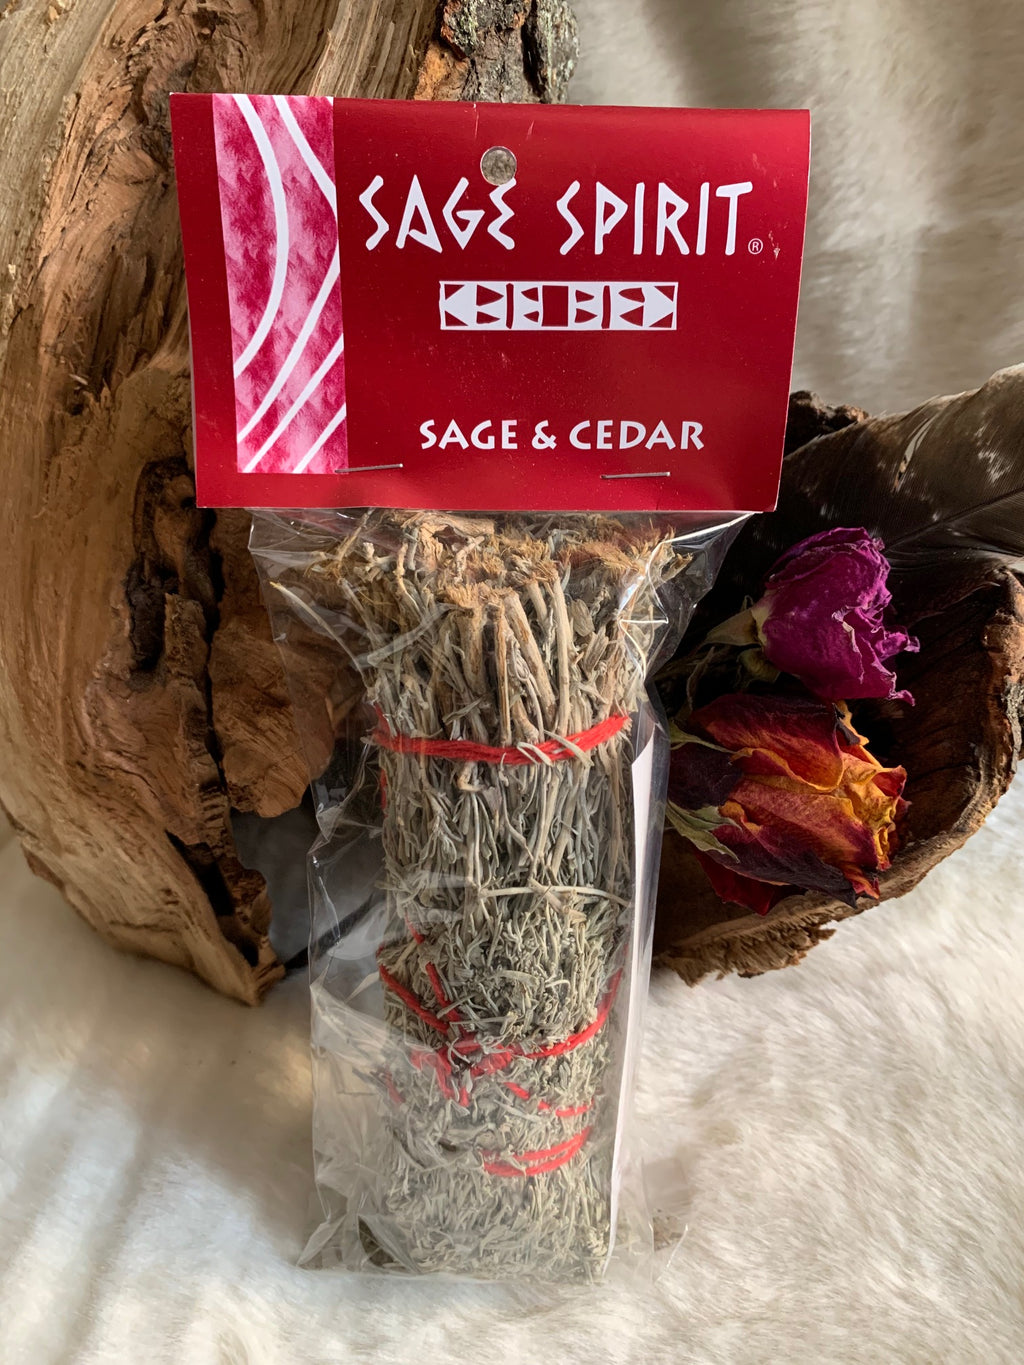 Sage is great for cleansing and Cedar is wonderful for protection, together they are a dynamic duo.  The ritual of sage burning has its roots in Native American tradition. Today, people burn sage and other holy herbs to cleanse a space or environment of negative energy, to generate wisdom and clarity, and to promote healing.